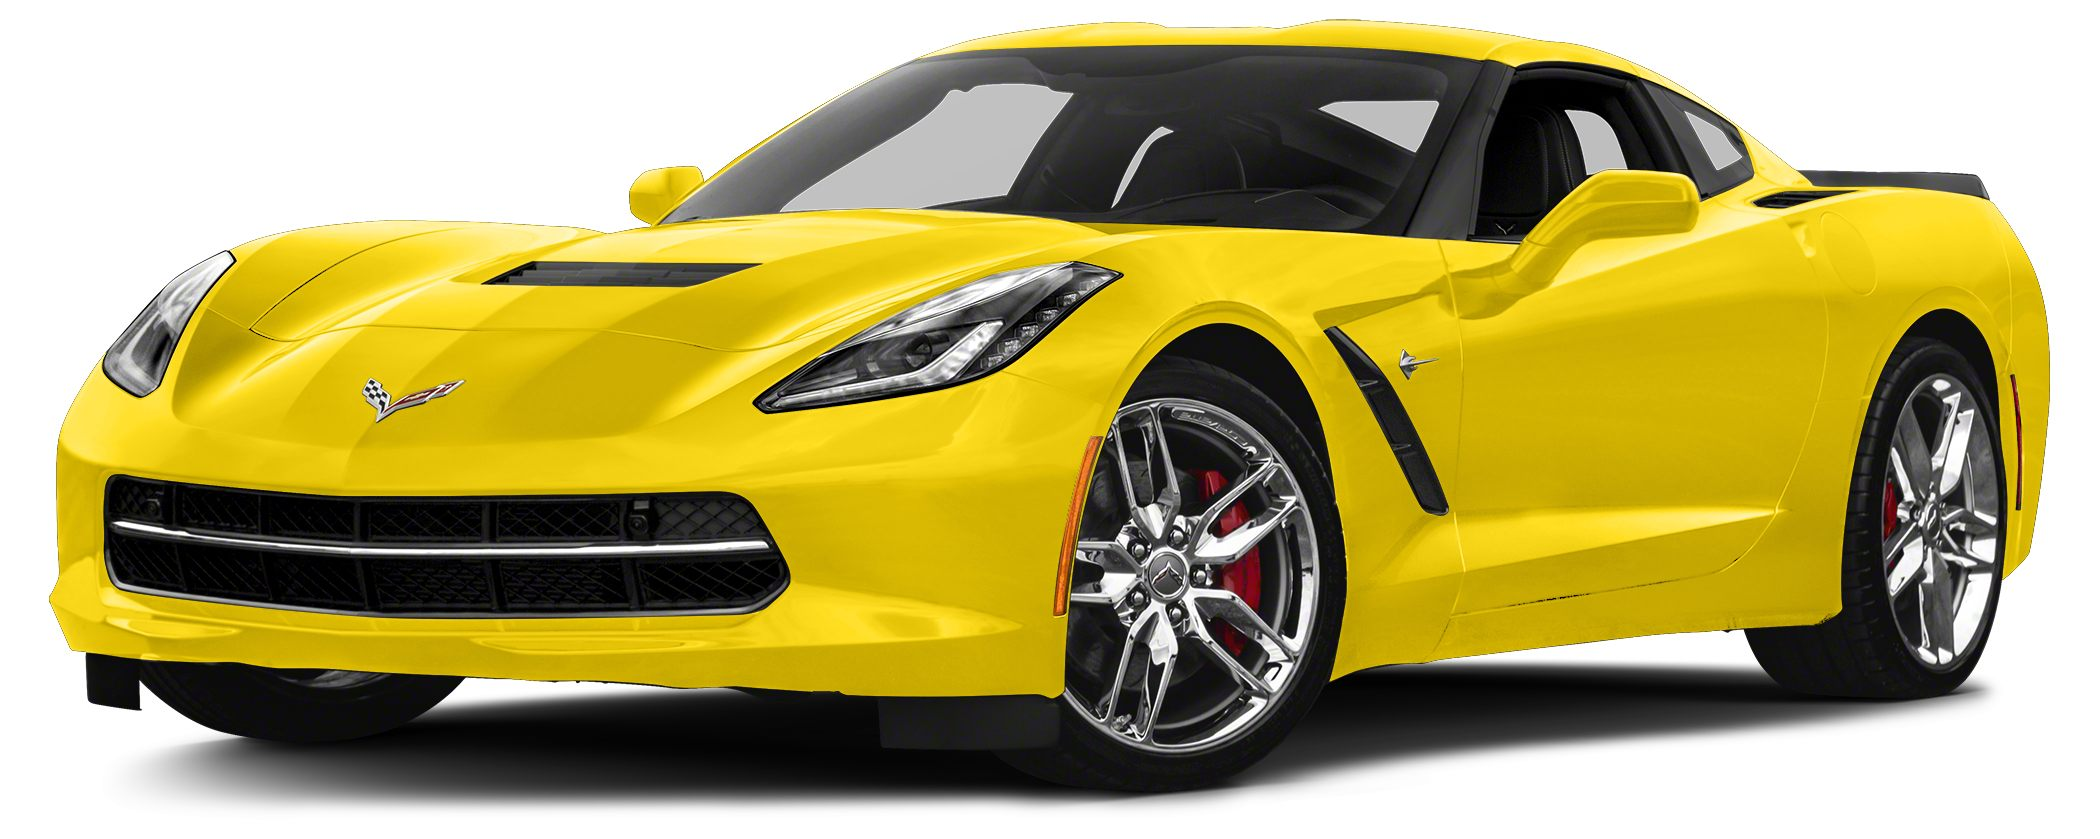 2016 Chevrolet Corvette Stingray Z51 Miles 2400Color Yellow Stock B4242 VIN 1G1YJ2D79G510294